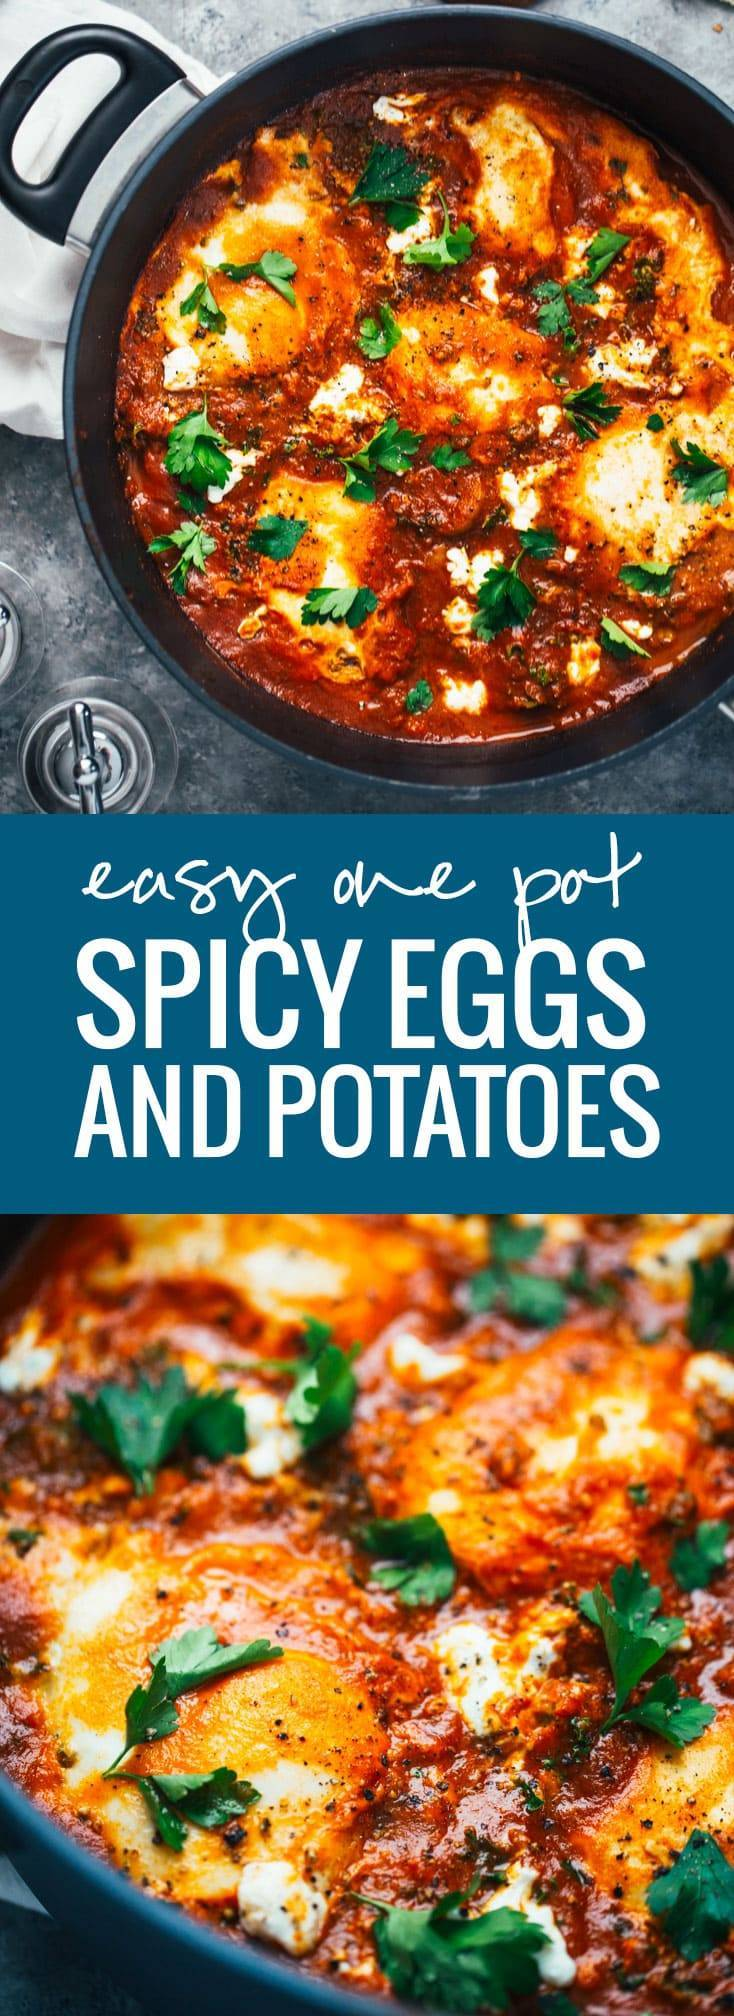 One Pot Spicy Eggs and Potatoes with Goat Cheese - a simple homemade sauce with spicy pan-fried potatoes, kale, creamy eggs, and goat cheese. DANG that's good! 350 calories.